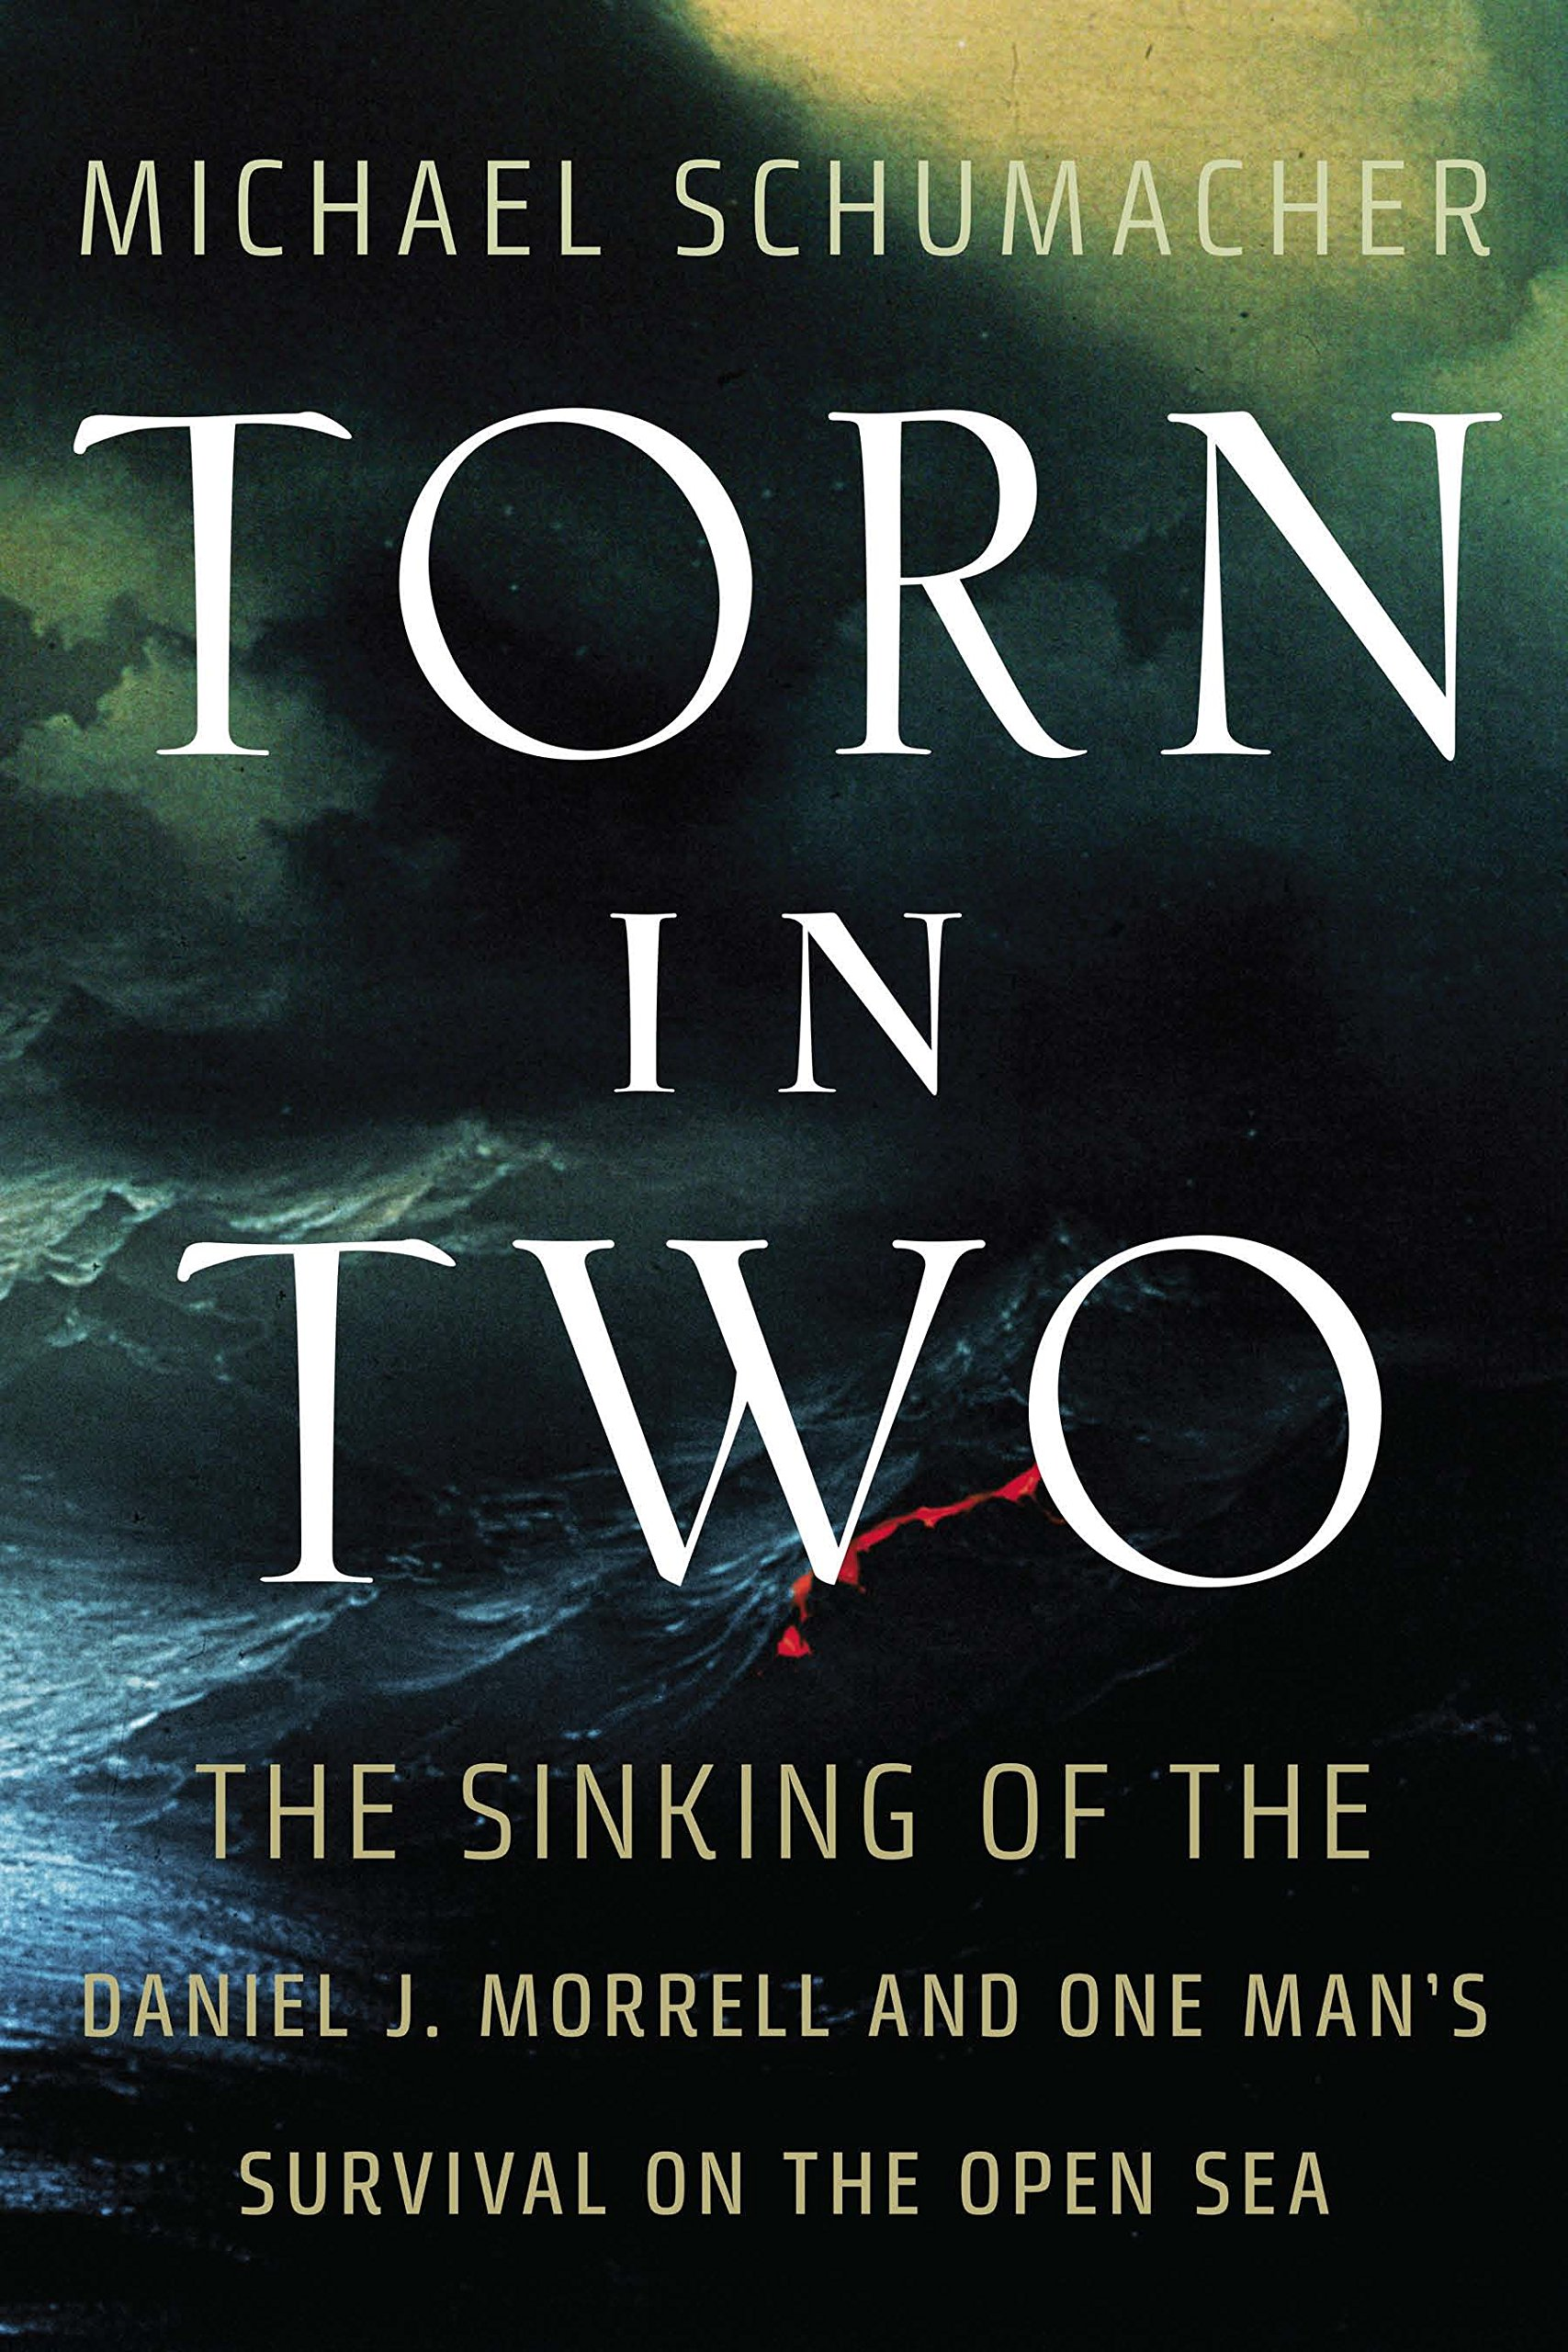 Download Torn in Two: The Sinking of the Daniel J. Morrell and One Man's Survival on the Open Sea PDF ePub fb2 ebook